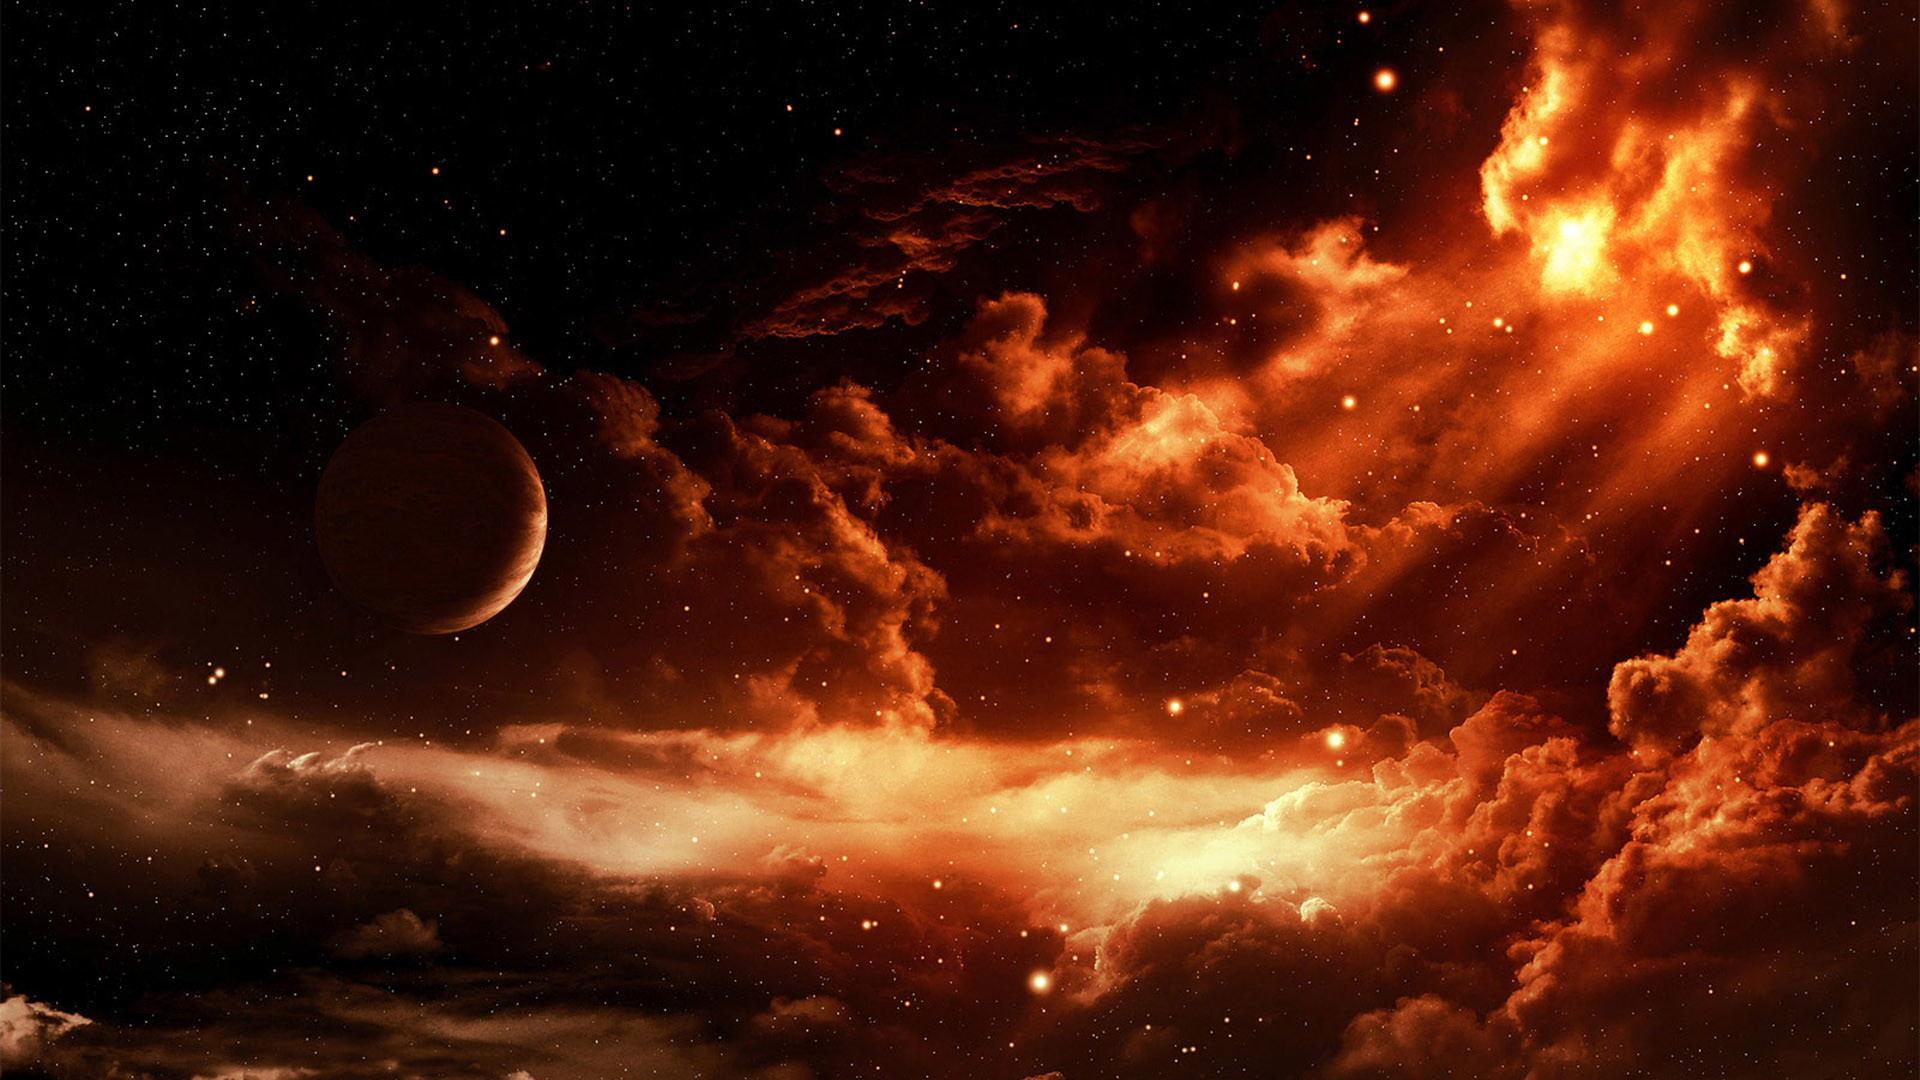 … space wallpapers 4 …